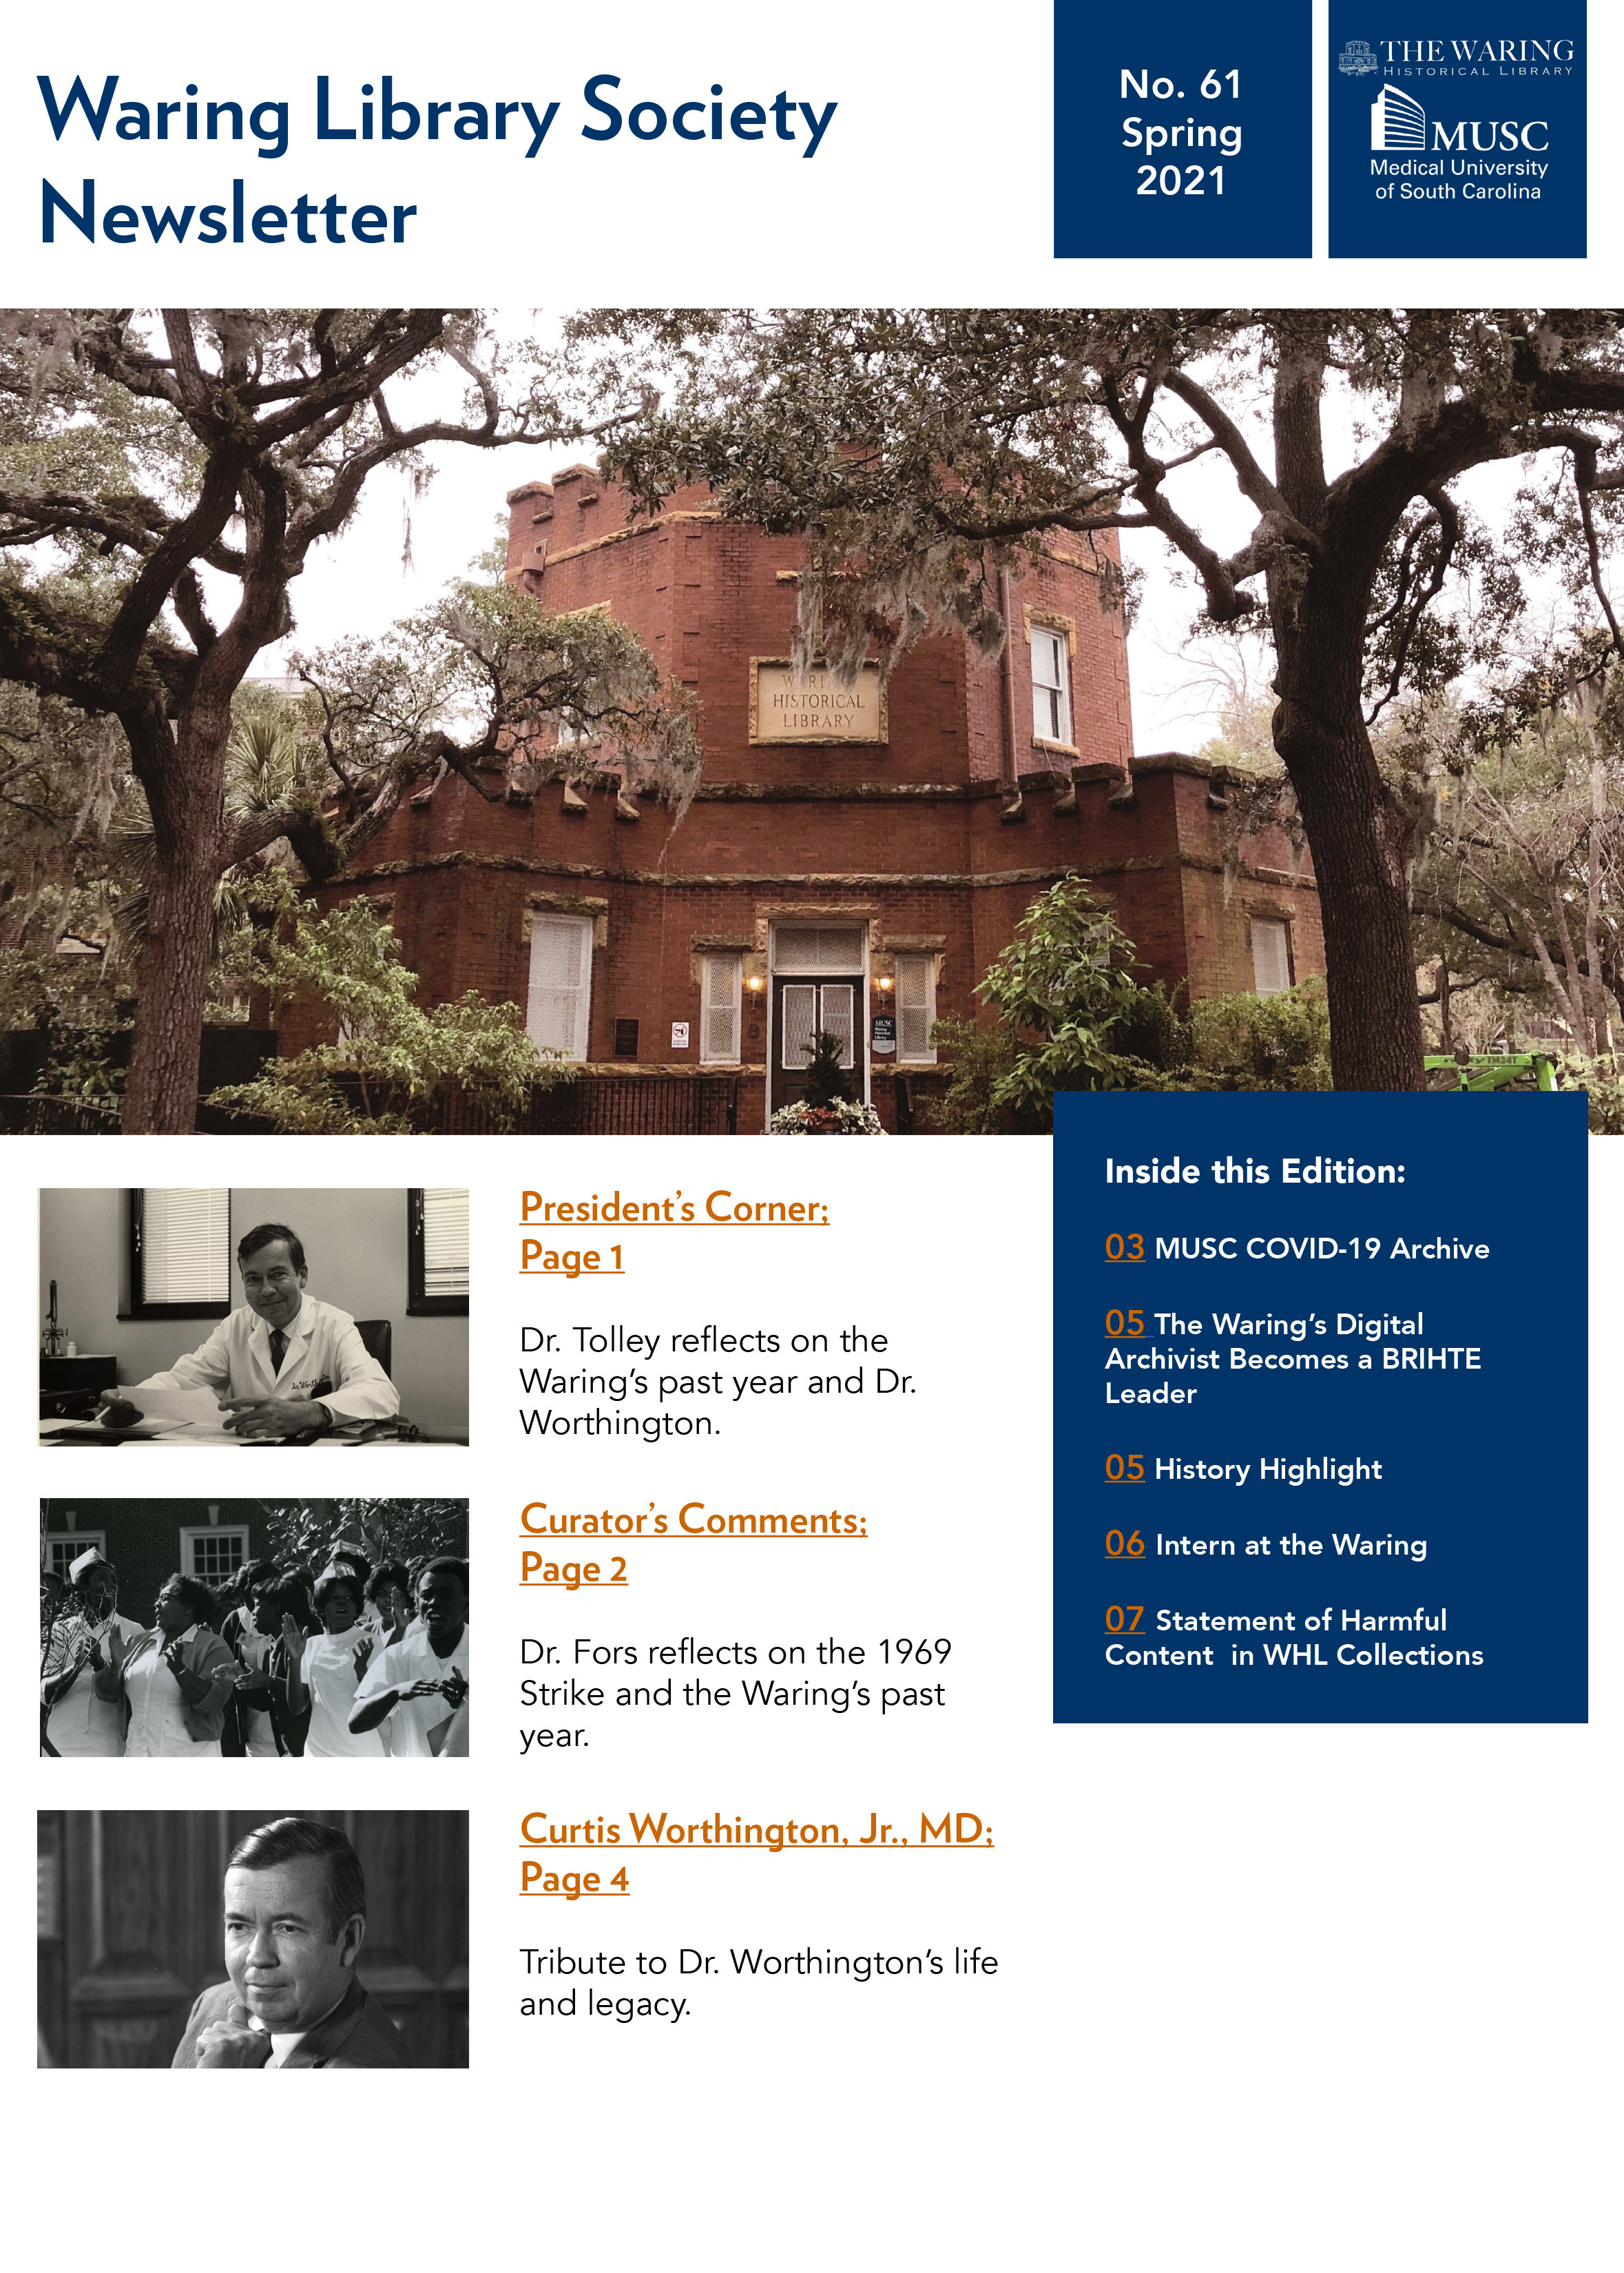 Waring Library Society Fall Newsletter Cover